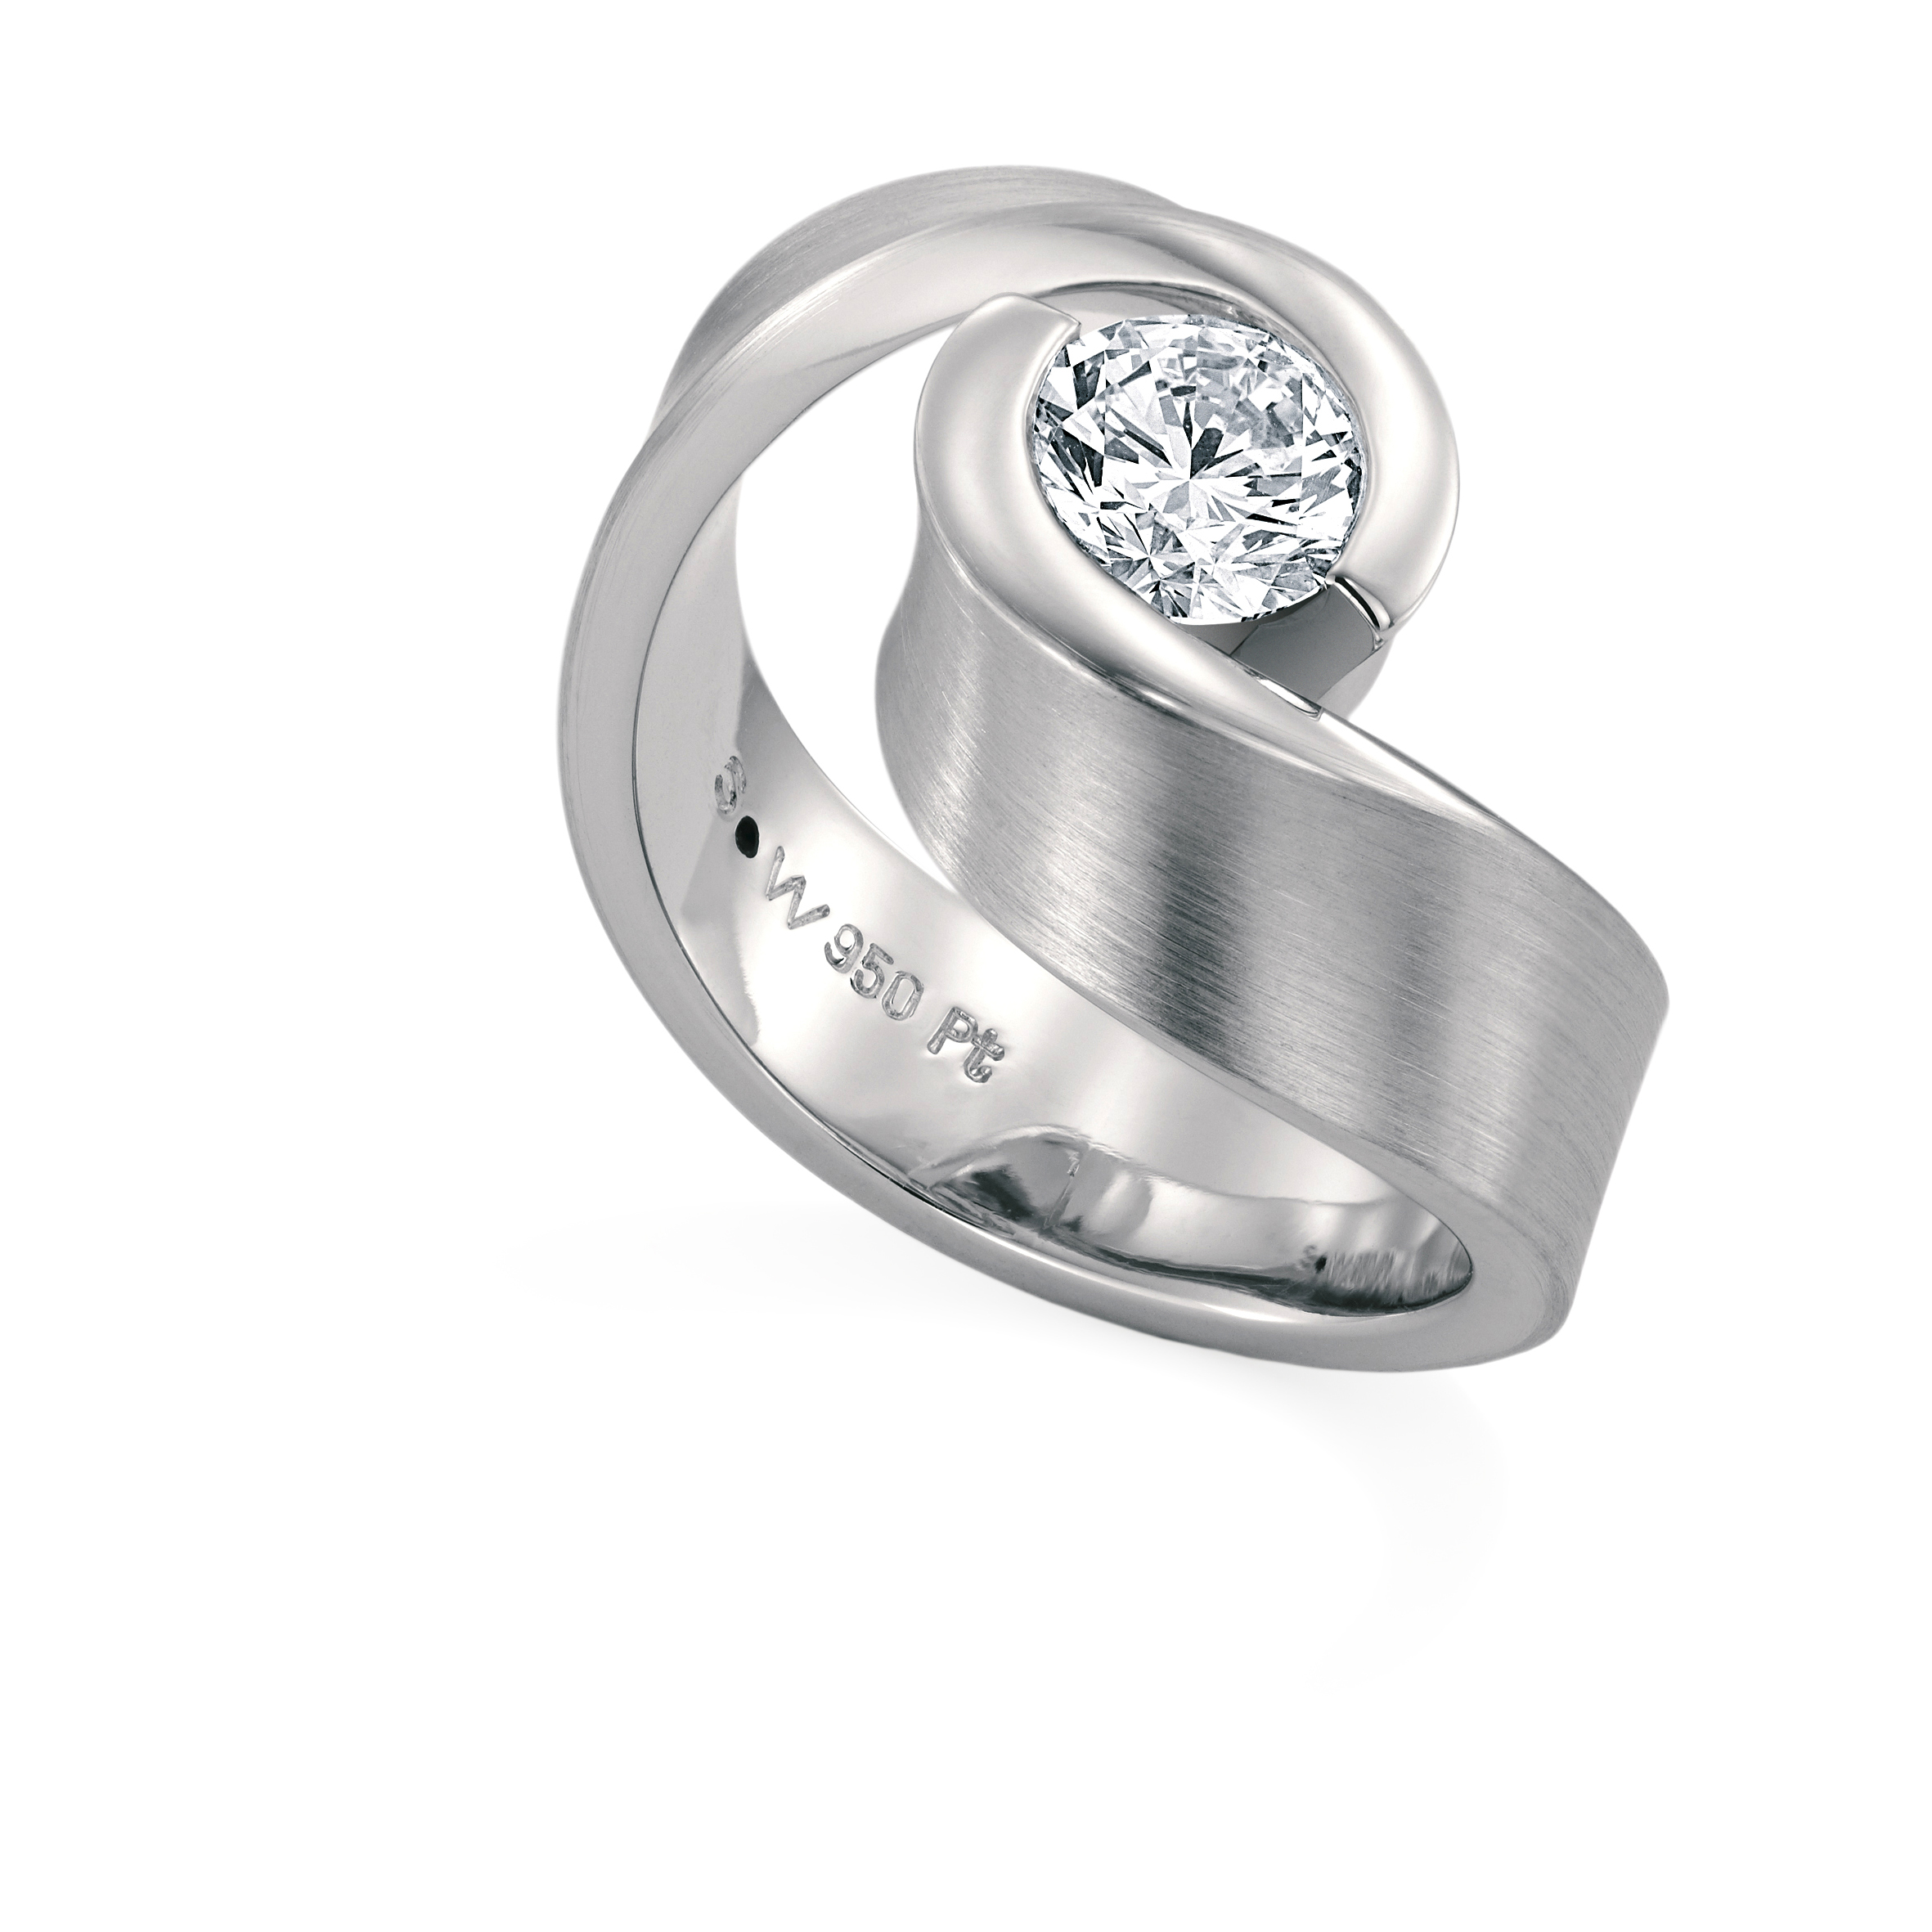 EMBRACE white gold ring set with 1 solitaire diamond